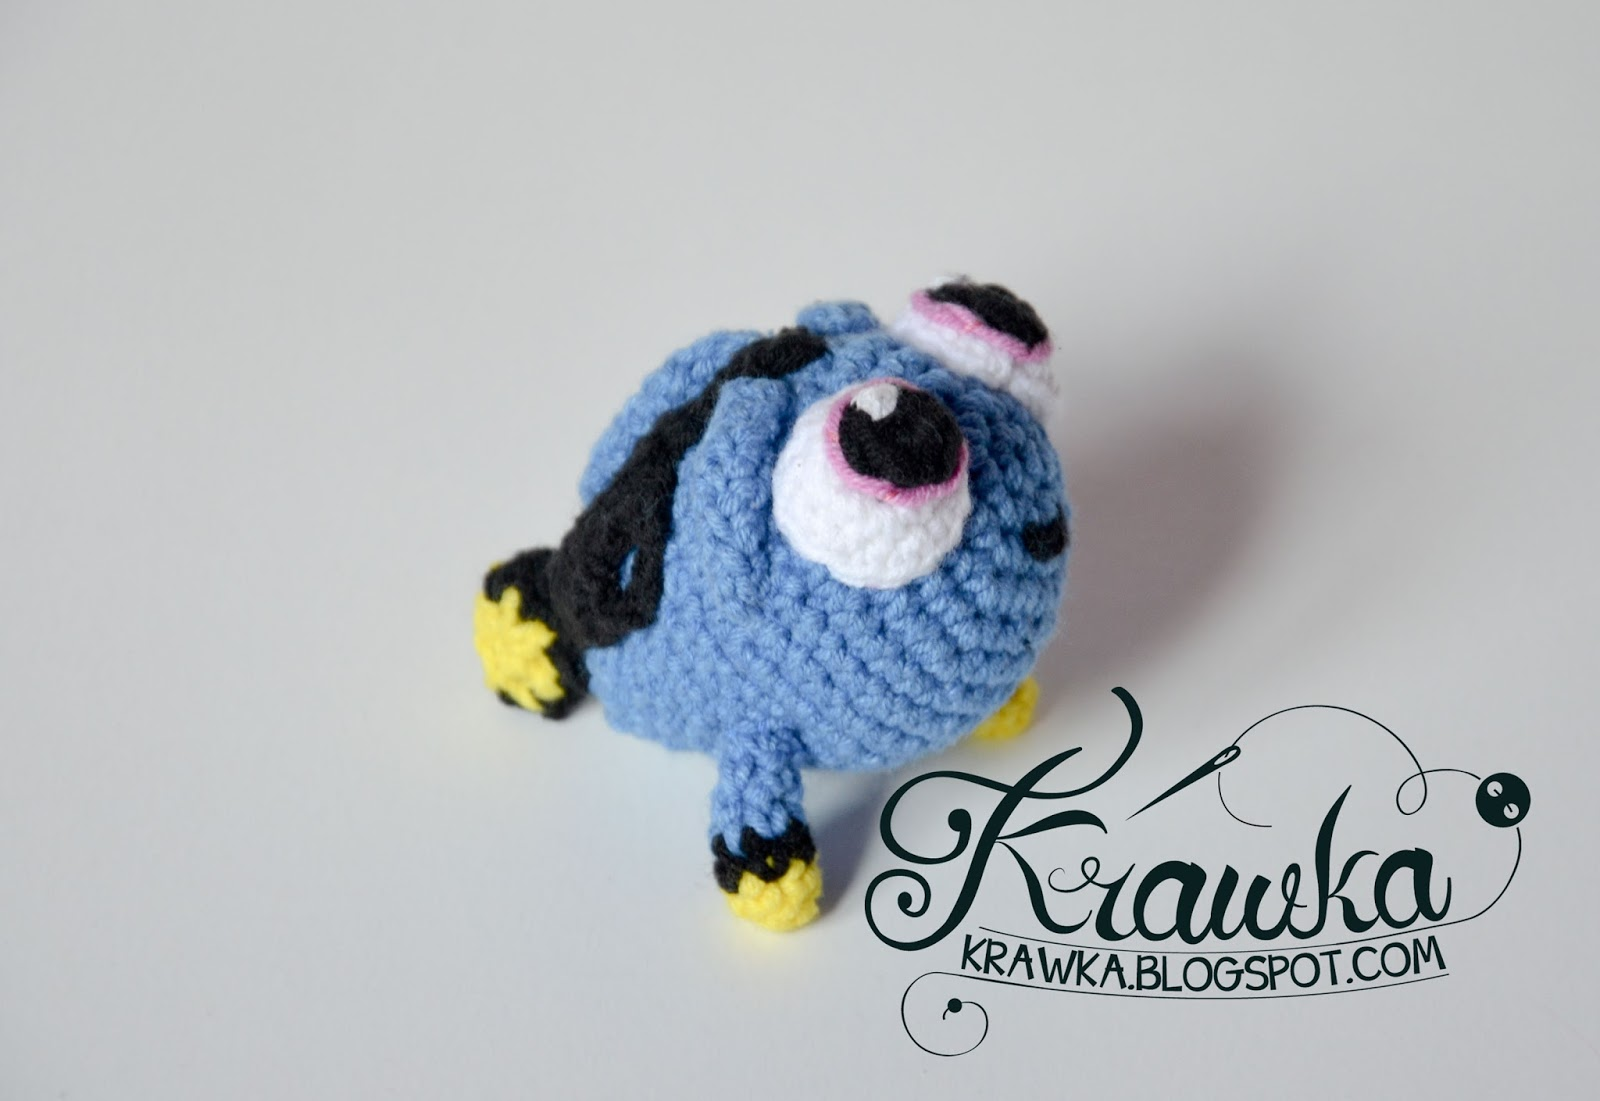 Finding Nemo - free crochet pattern | Crochet patterns, Crochet ... | 1101x1600